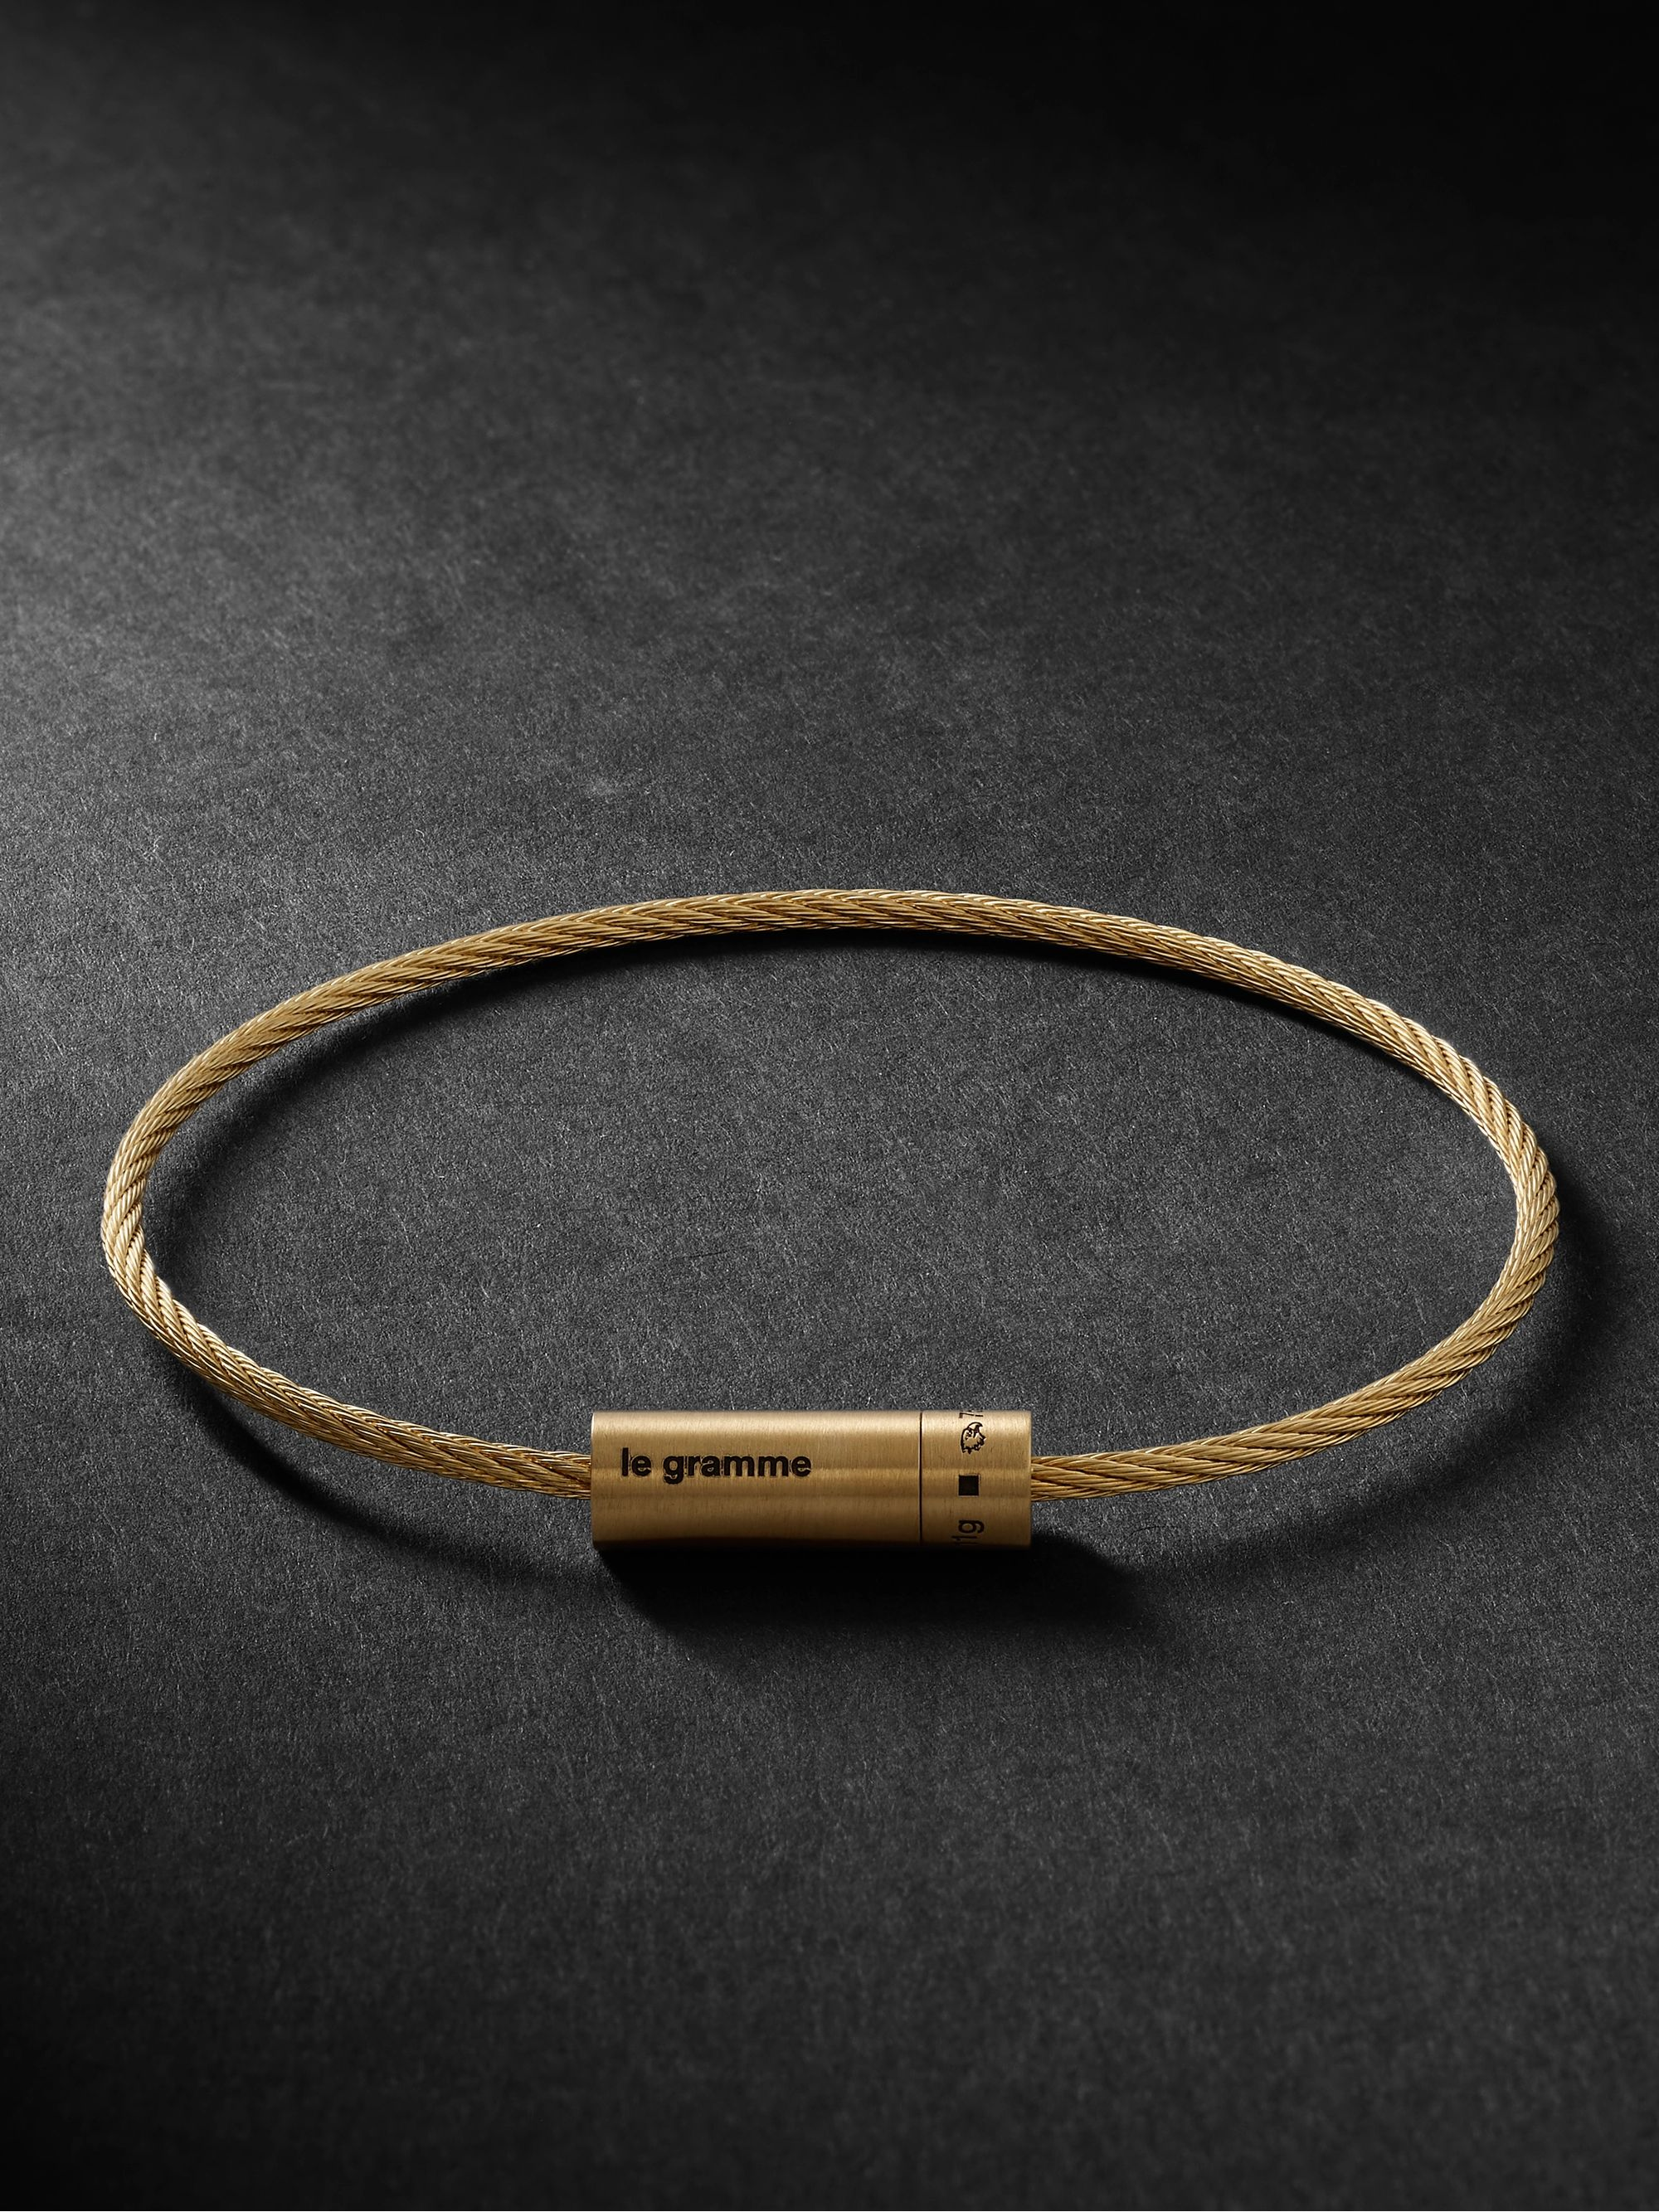 Le Gramme Le 11 Cable Brushed 18-Karat Gold Bracelet